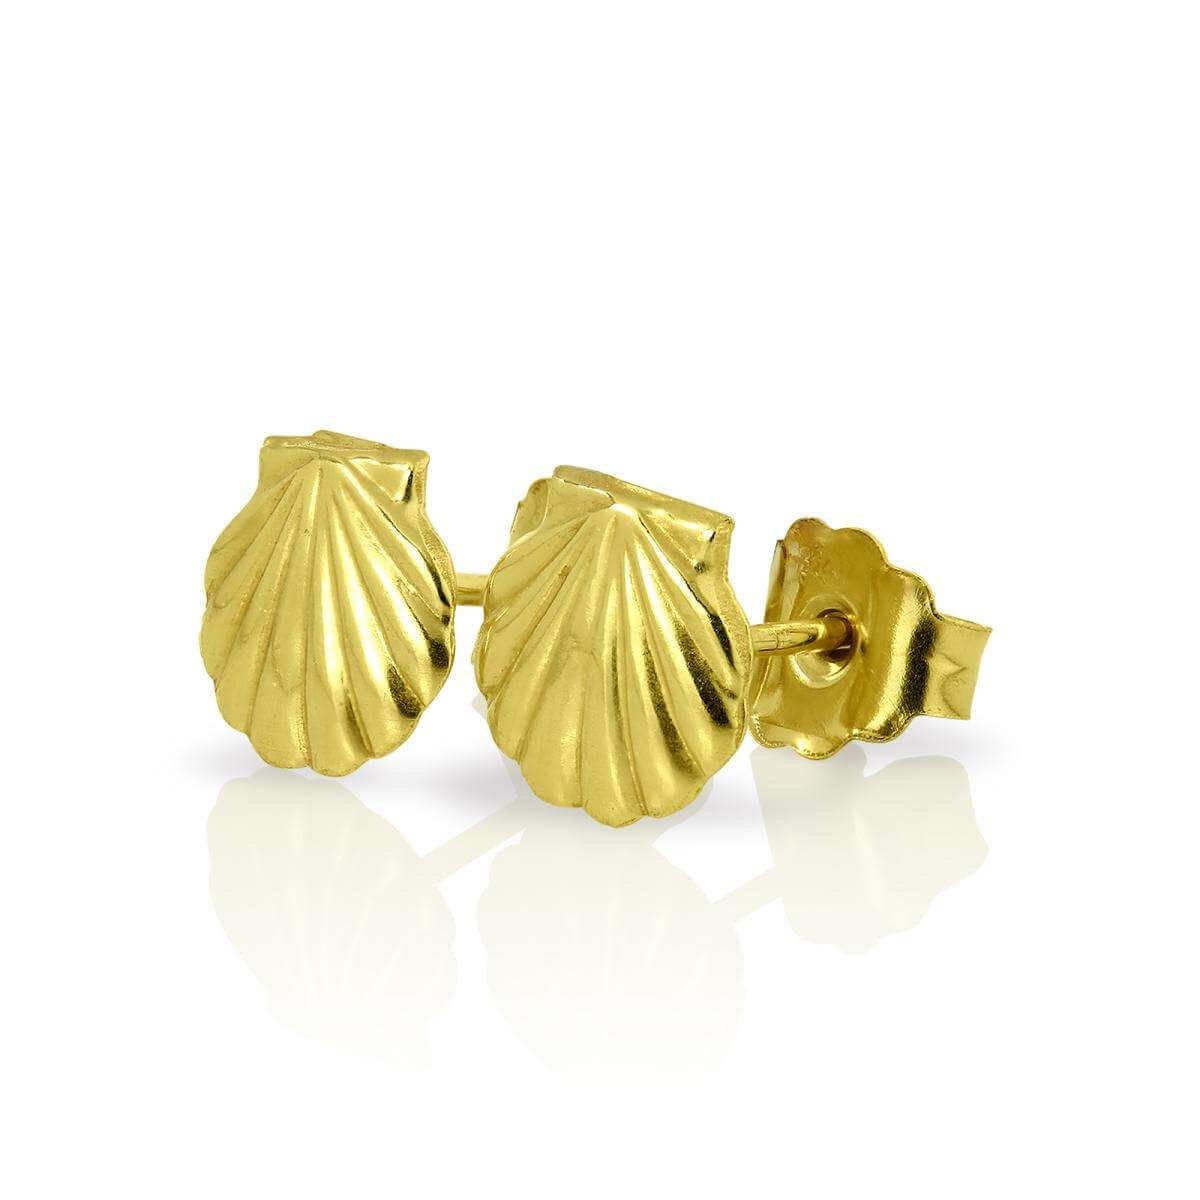 9ct Gold Clam Sea Shell Stud Earrings